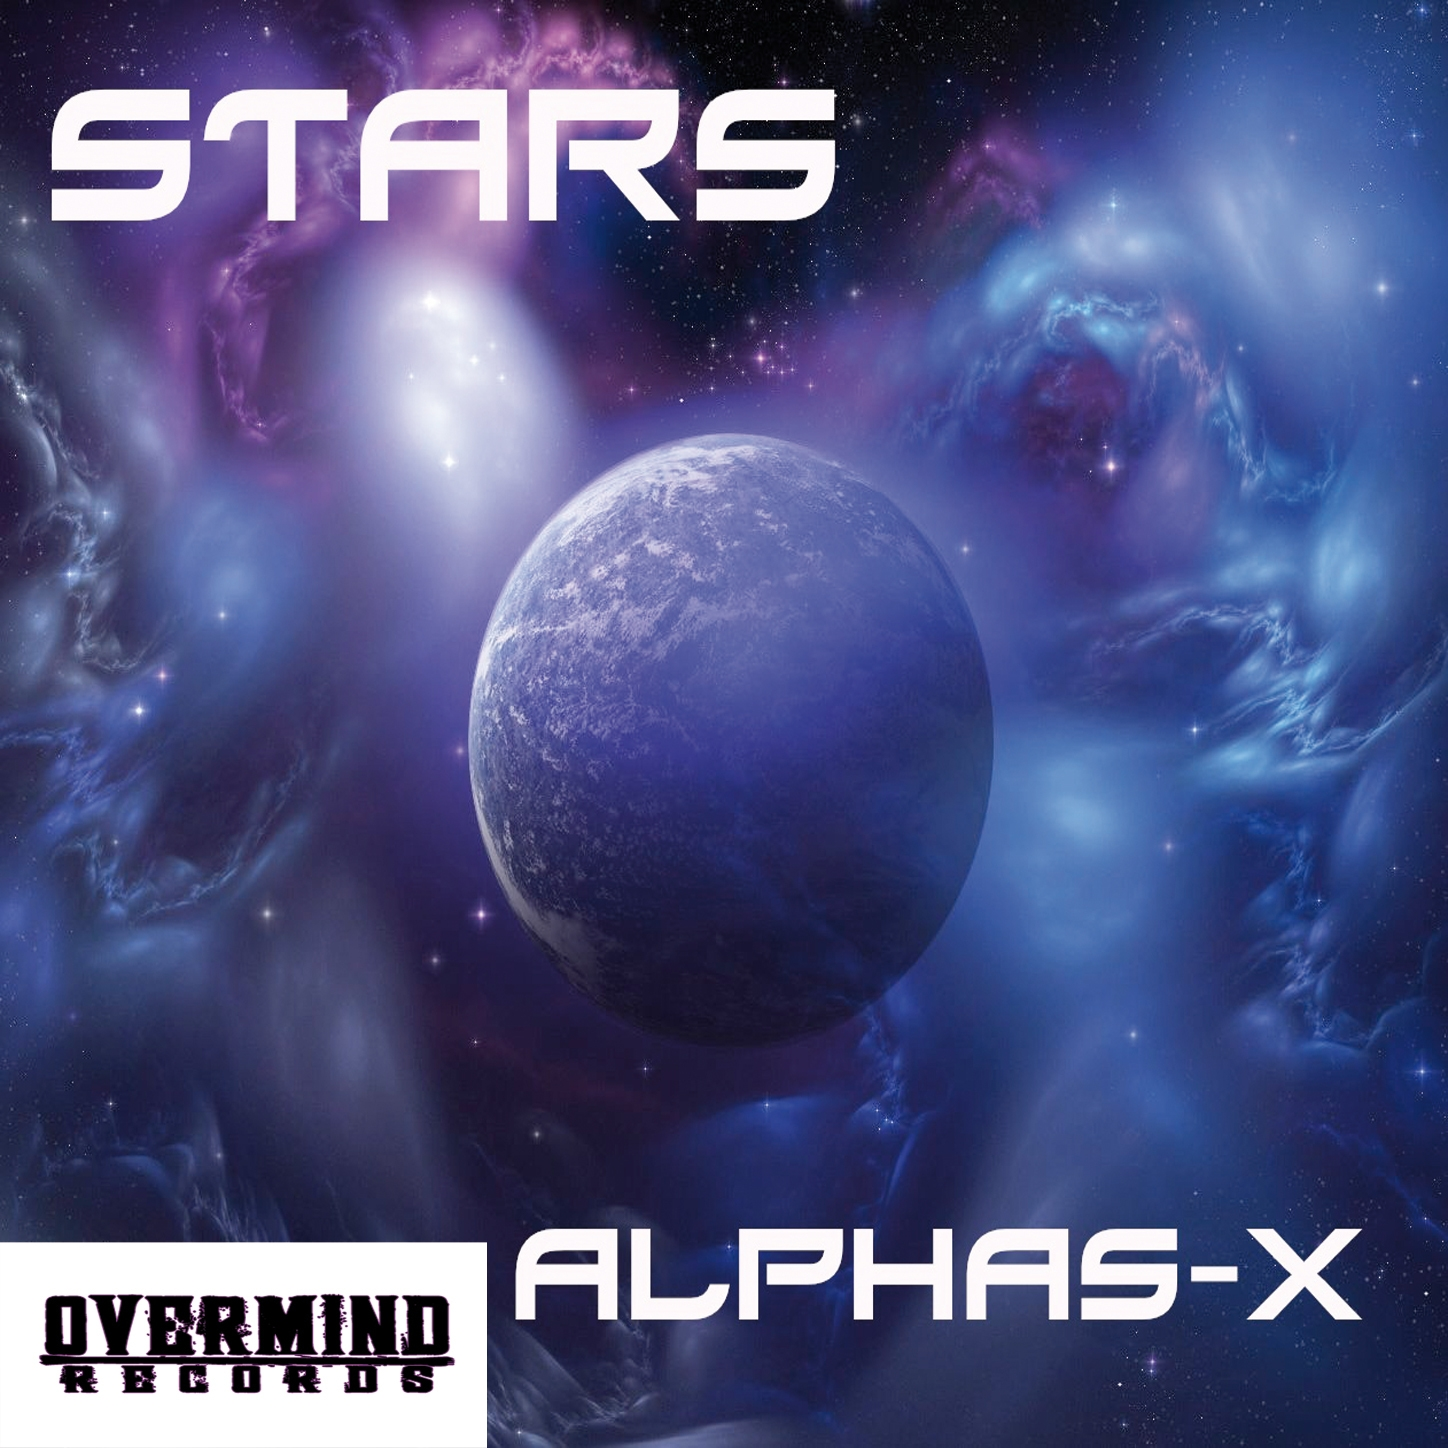 Alpha-x - Stars (Instrimental mix)